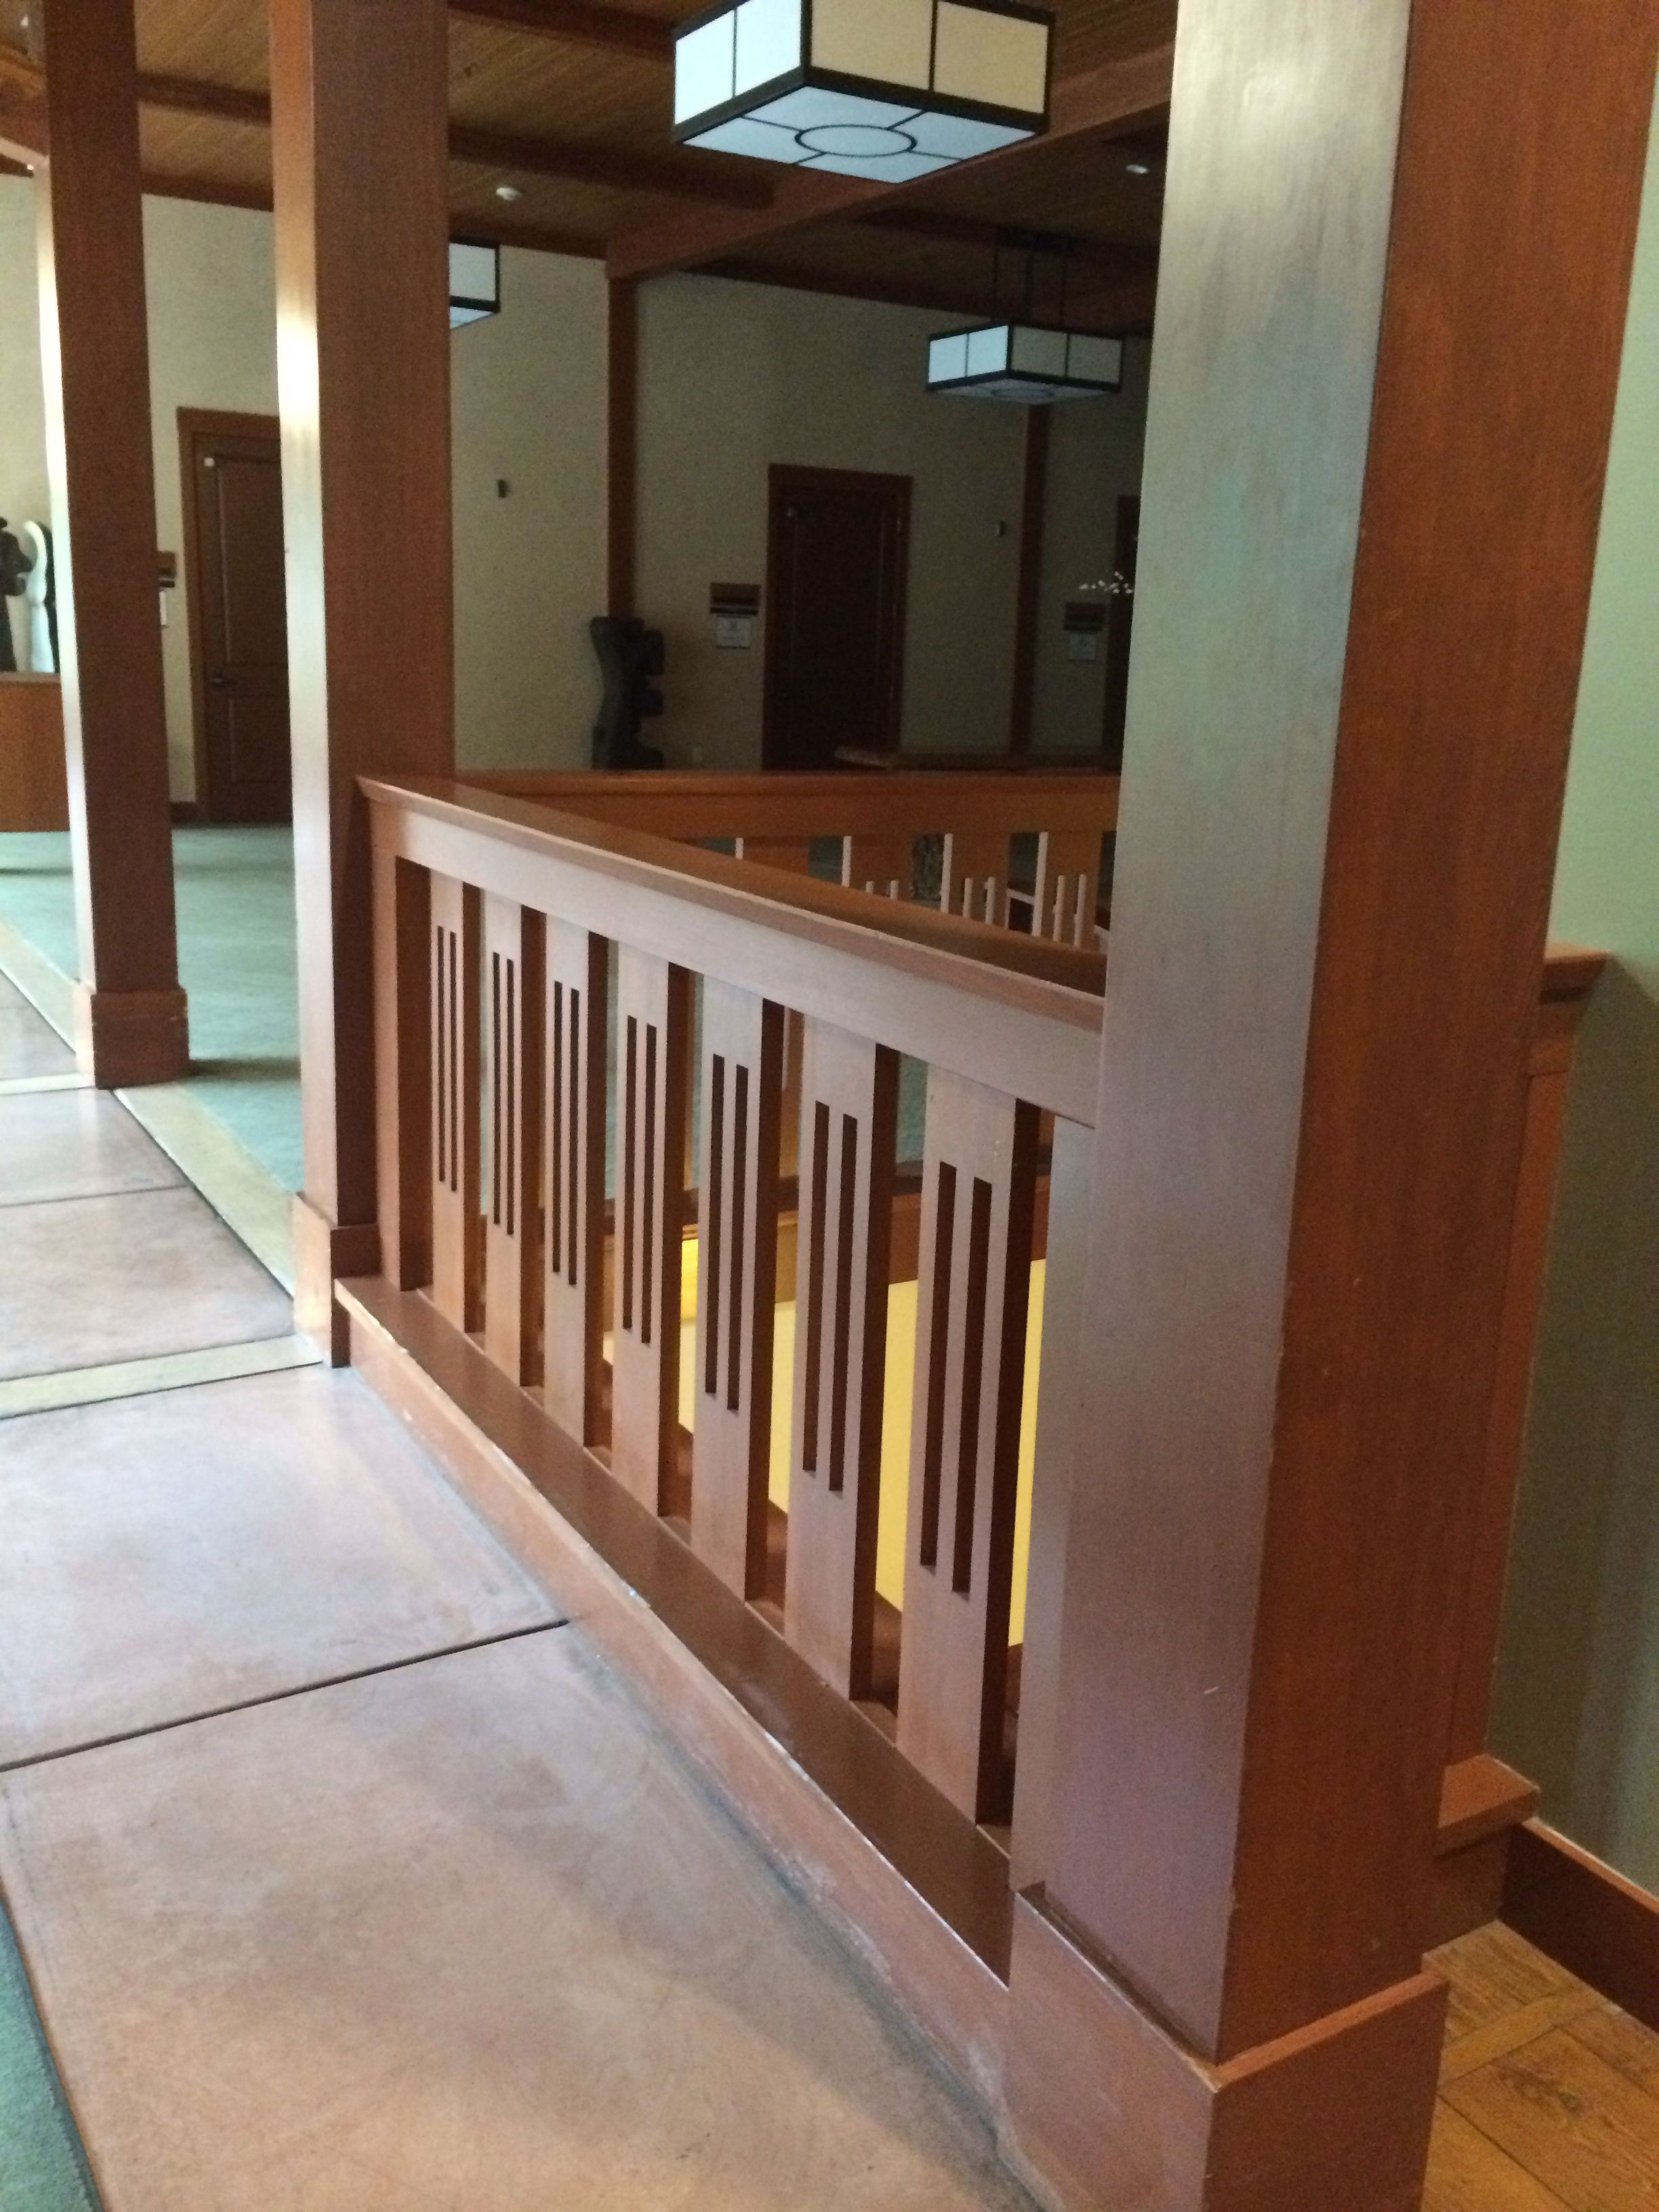 Pin By Mohammad Sameer On Building Project Ideas Craftsman | Mission Style Hand Railings | Indoor | Bungalow | Front Porch | Art Craft | Hand